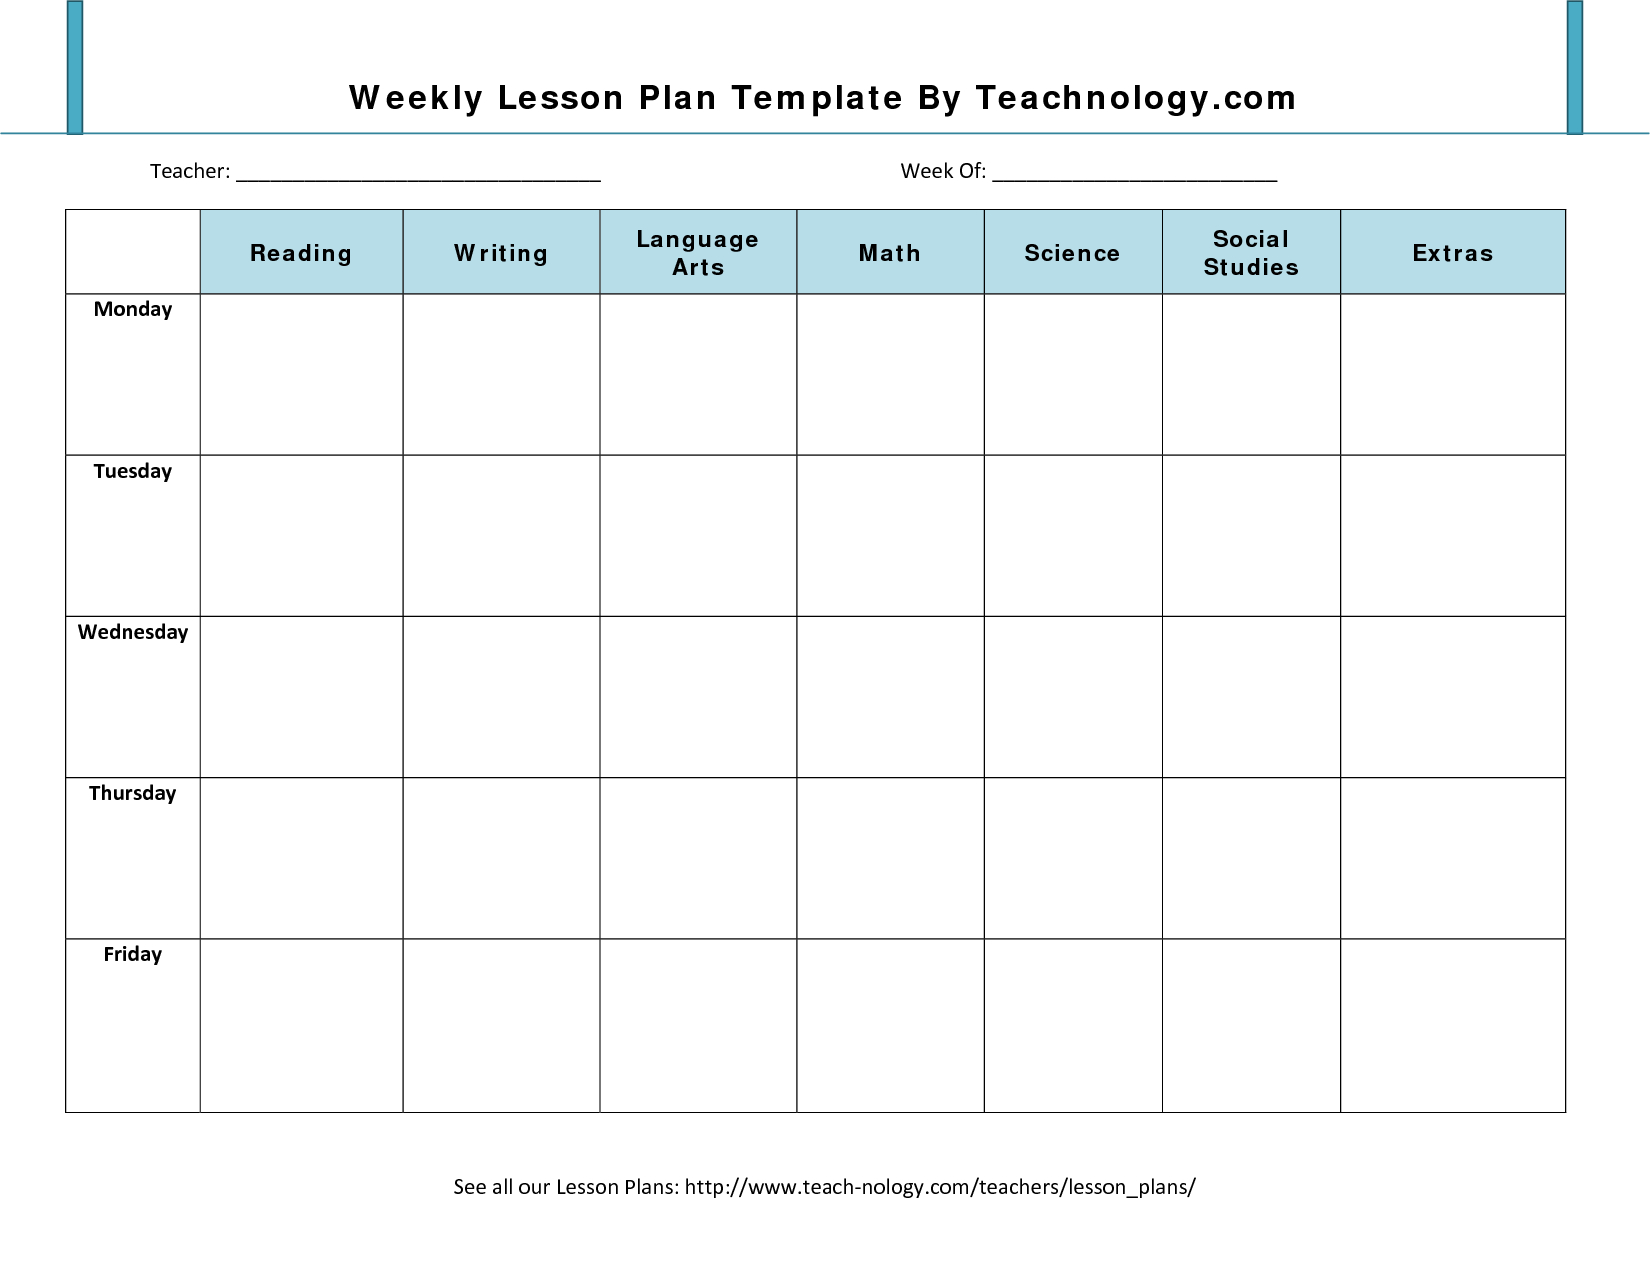 Lesson Plan Format 7 Weekly Lesson Plan Template For Lesson Plan Template Weekly Prescool Plannar